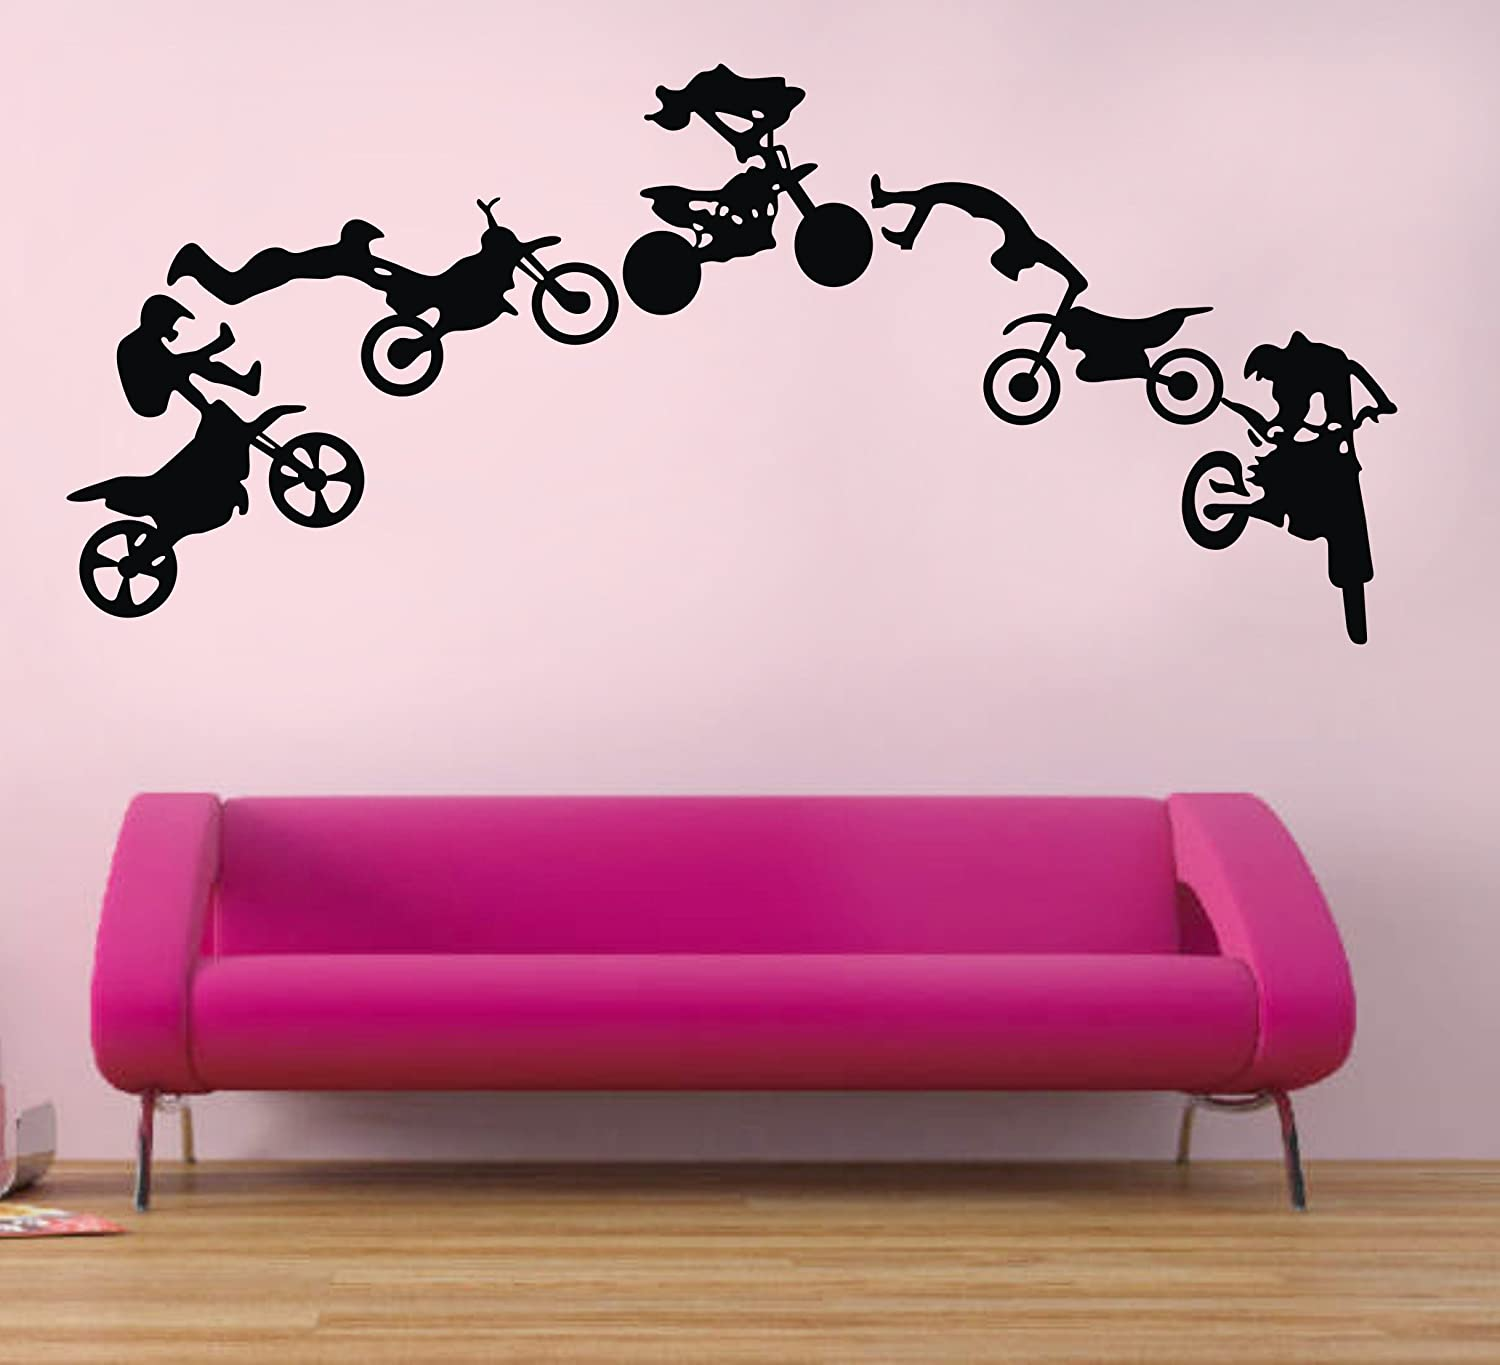 Amazon motocross wall decals motocross graphic extreme sport amazon motocross wall decals motocross graphic extreme sport silhouette removable wall art diy vinyl wall sticker baby amipublicfo Gallery